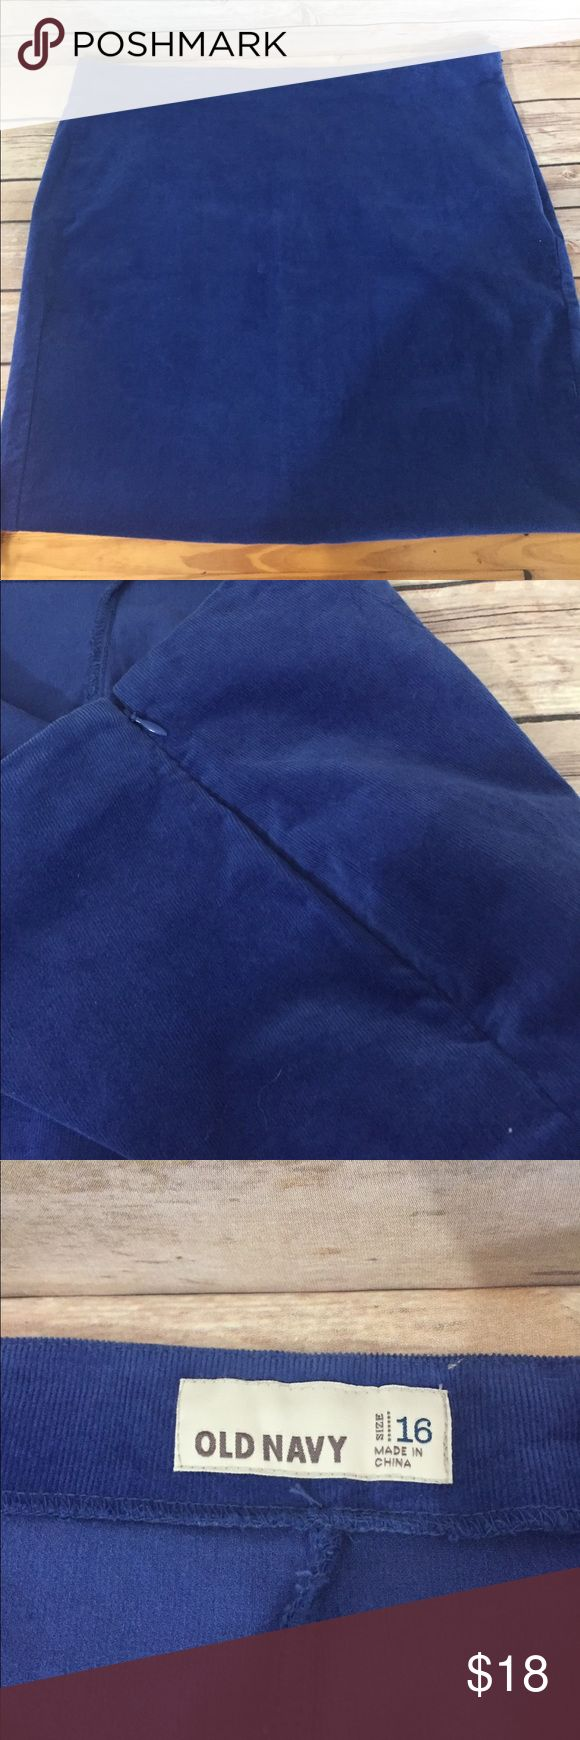 """Old Navy Blue Corduroy Skirt Sz 16 Love this bright happy blue stretch  corduroy skirt from Old Navy. It's in like new condition, size 16, flat front side zipper. Lying flat, the waist area measures 20 inches, hips measures 23"""", overall length 21"""". Great basic that is not so basic!  B155 Loc Old Navy Skirts"""